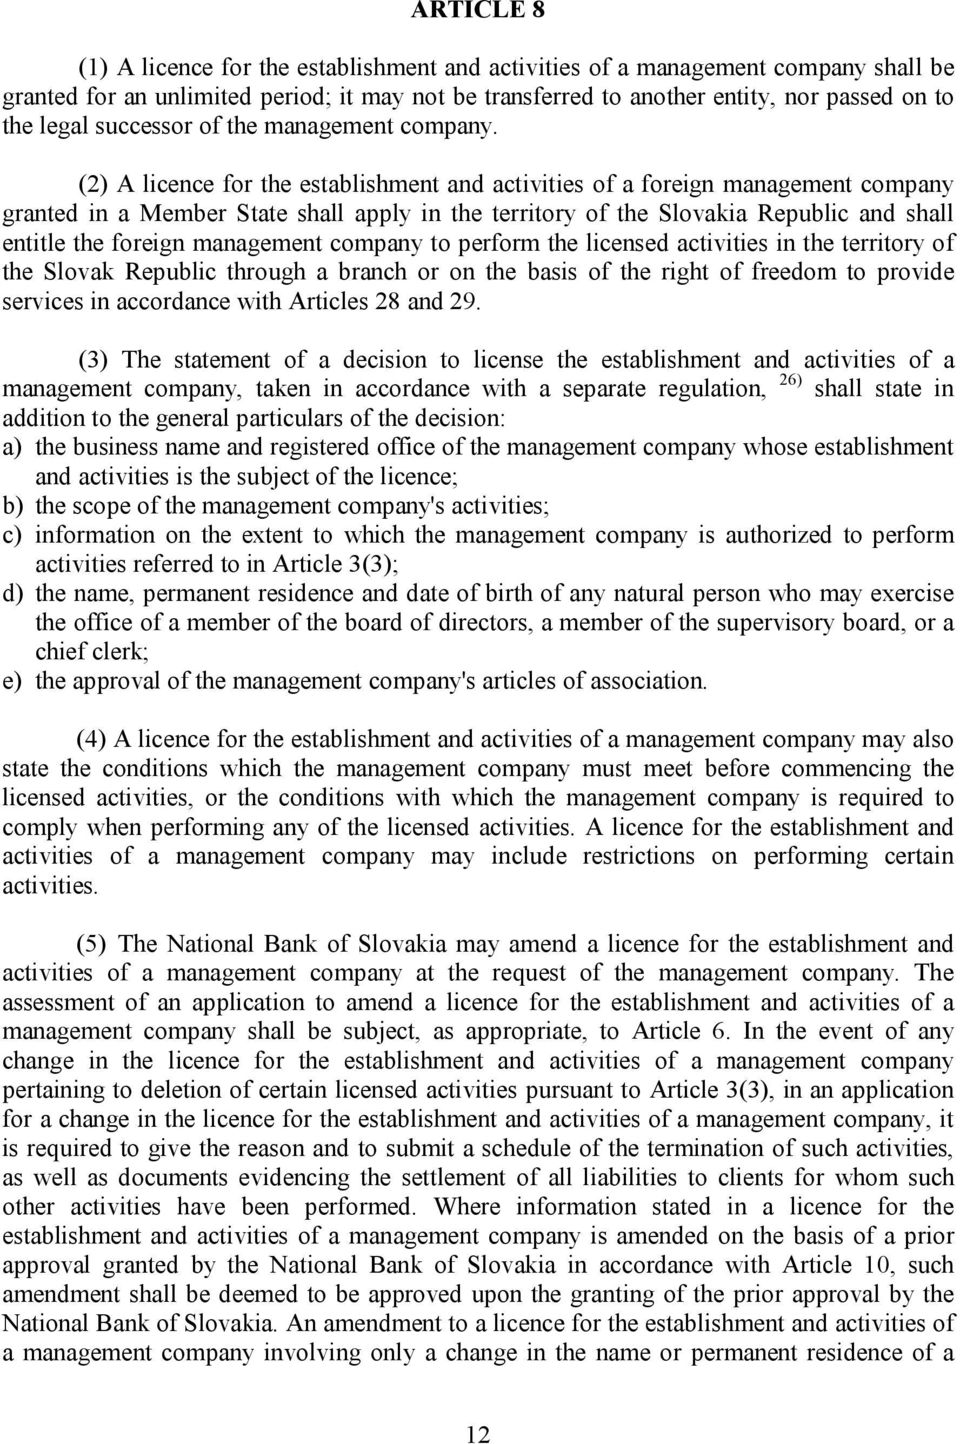 (2) A licence for the establishment and activities of a foreign management company granted in a Member State shall apply in the territory of the Slovakia Republic and shall entitle the foreign